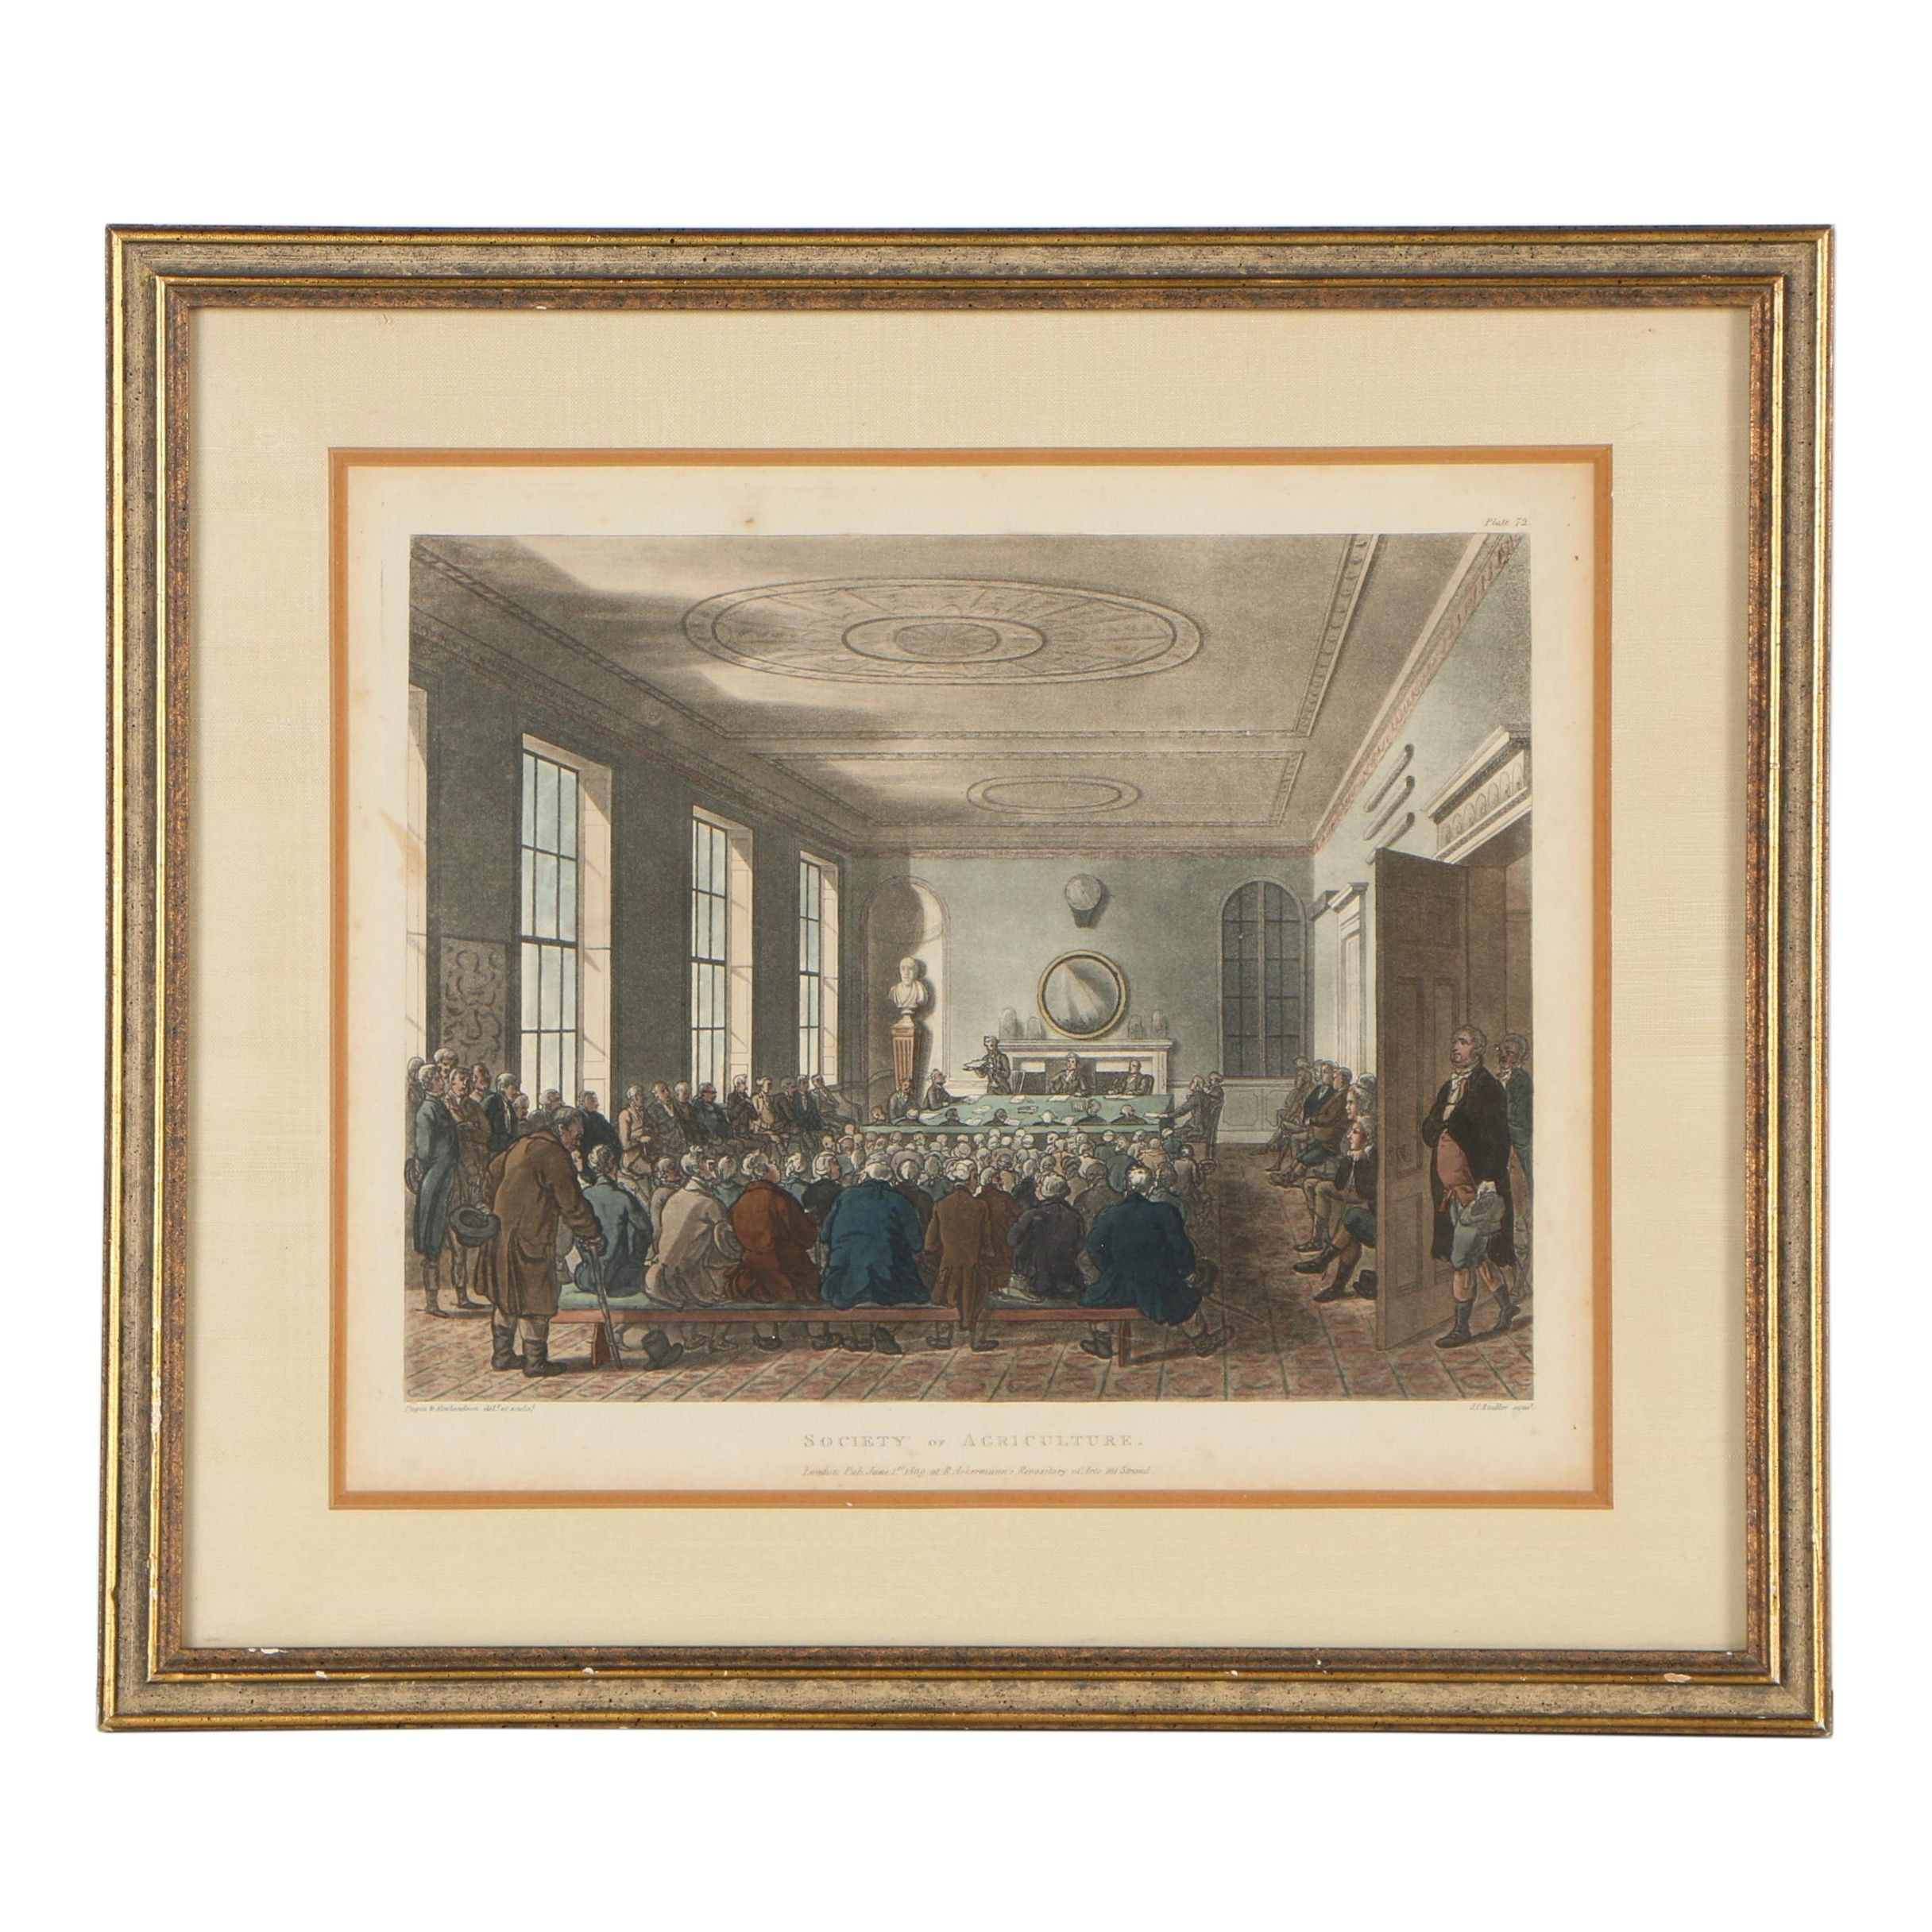 """Pugin and Rowlandson Hand-Colored Etching """"Society of Agriculture"""", 1809"""